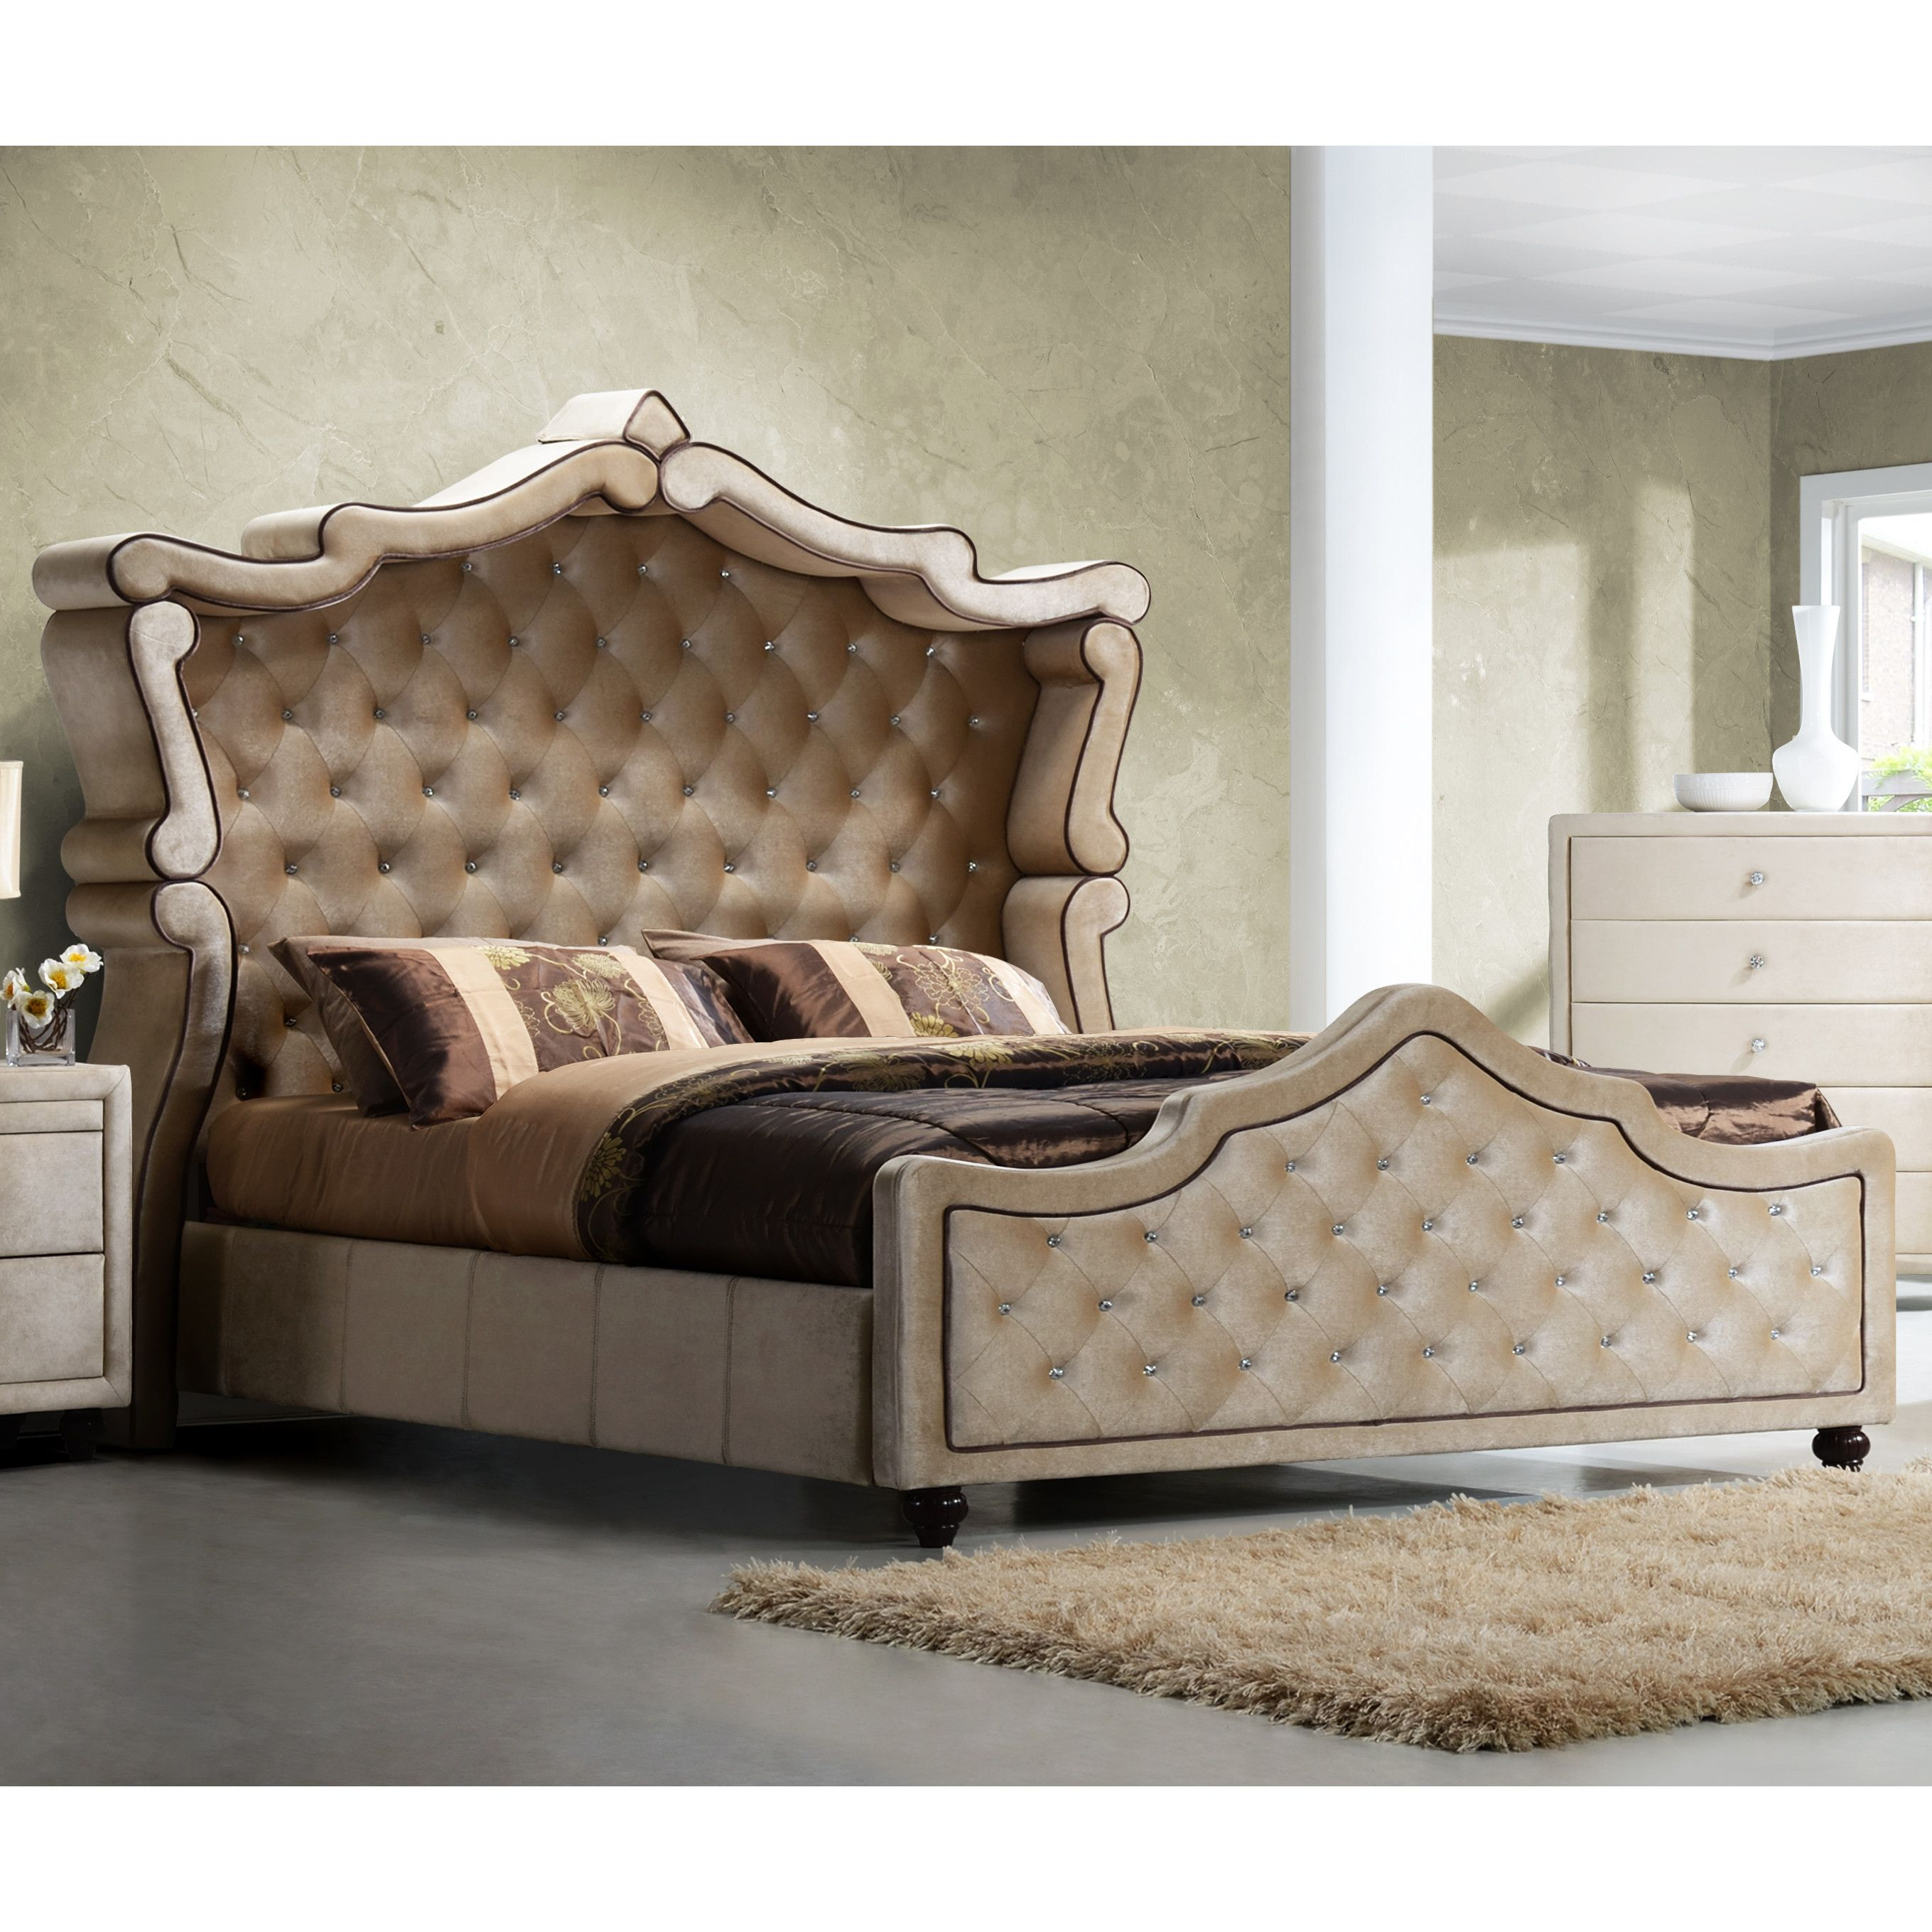 Meridian Furniture USA Diamond Upholstered Panel Bed